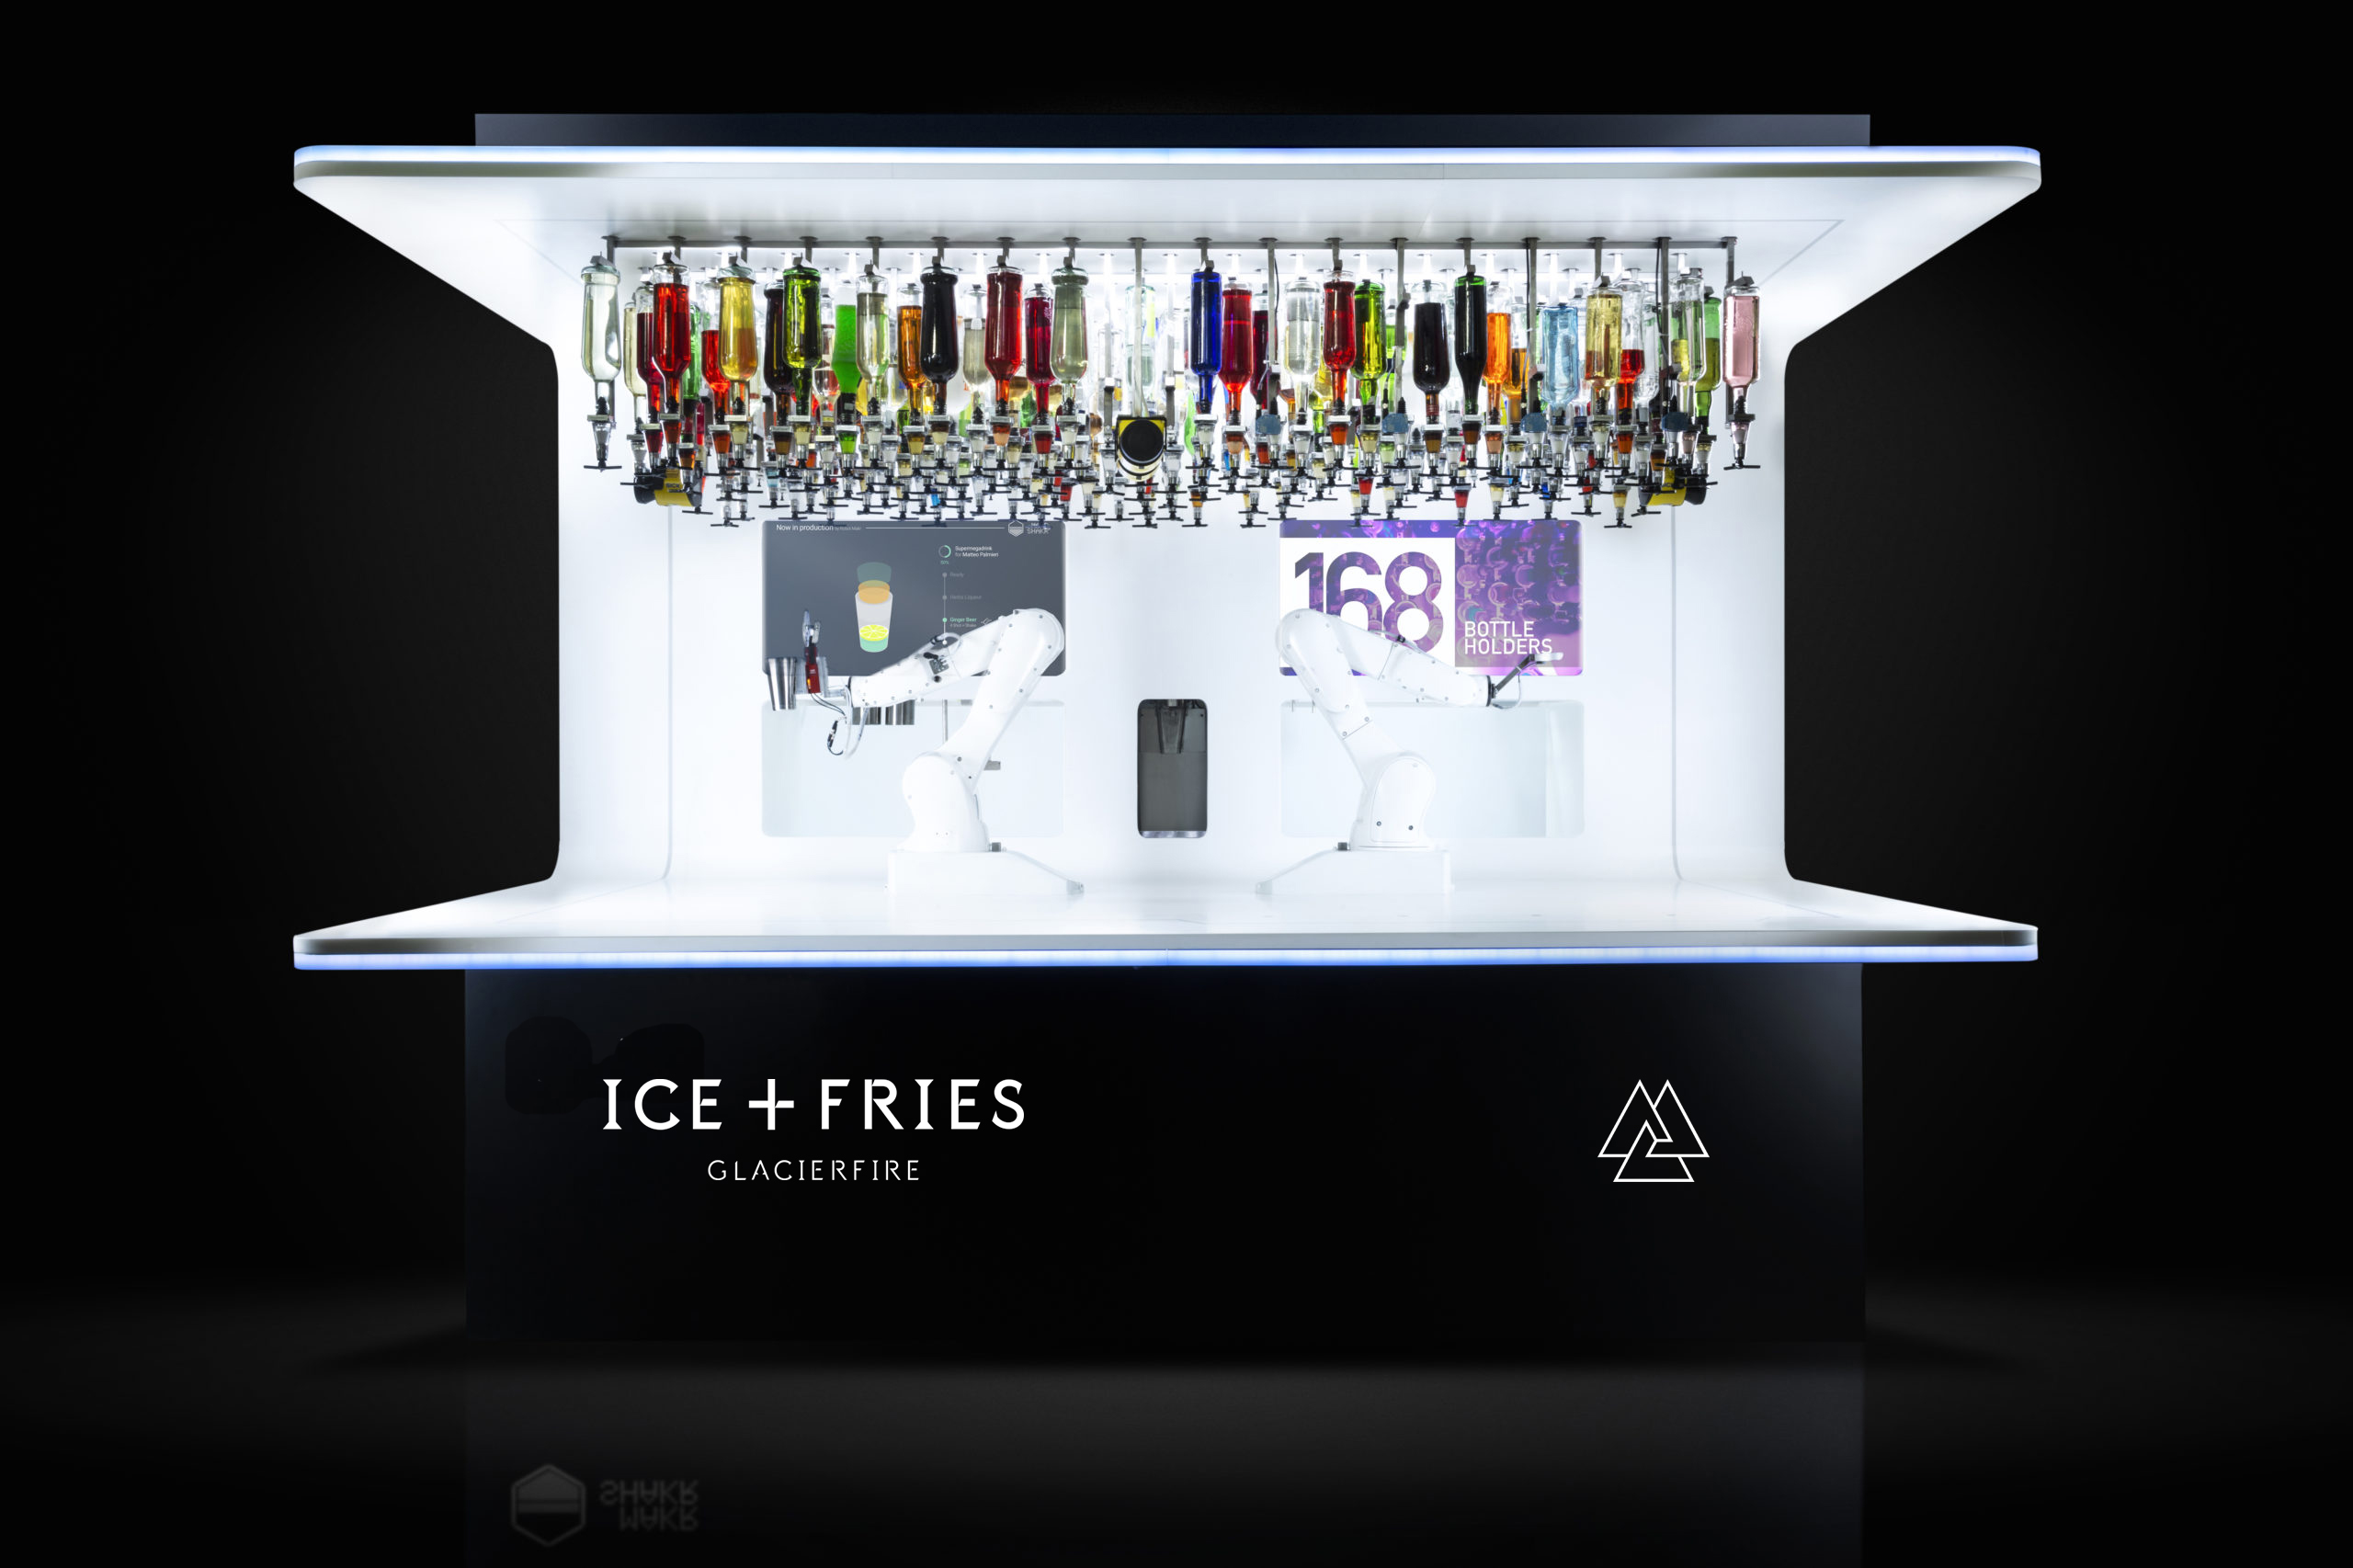 Ice + Fries bionic street food bar in Iceland